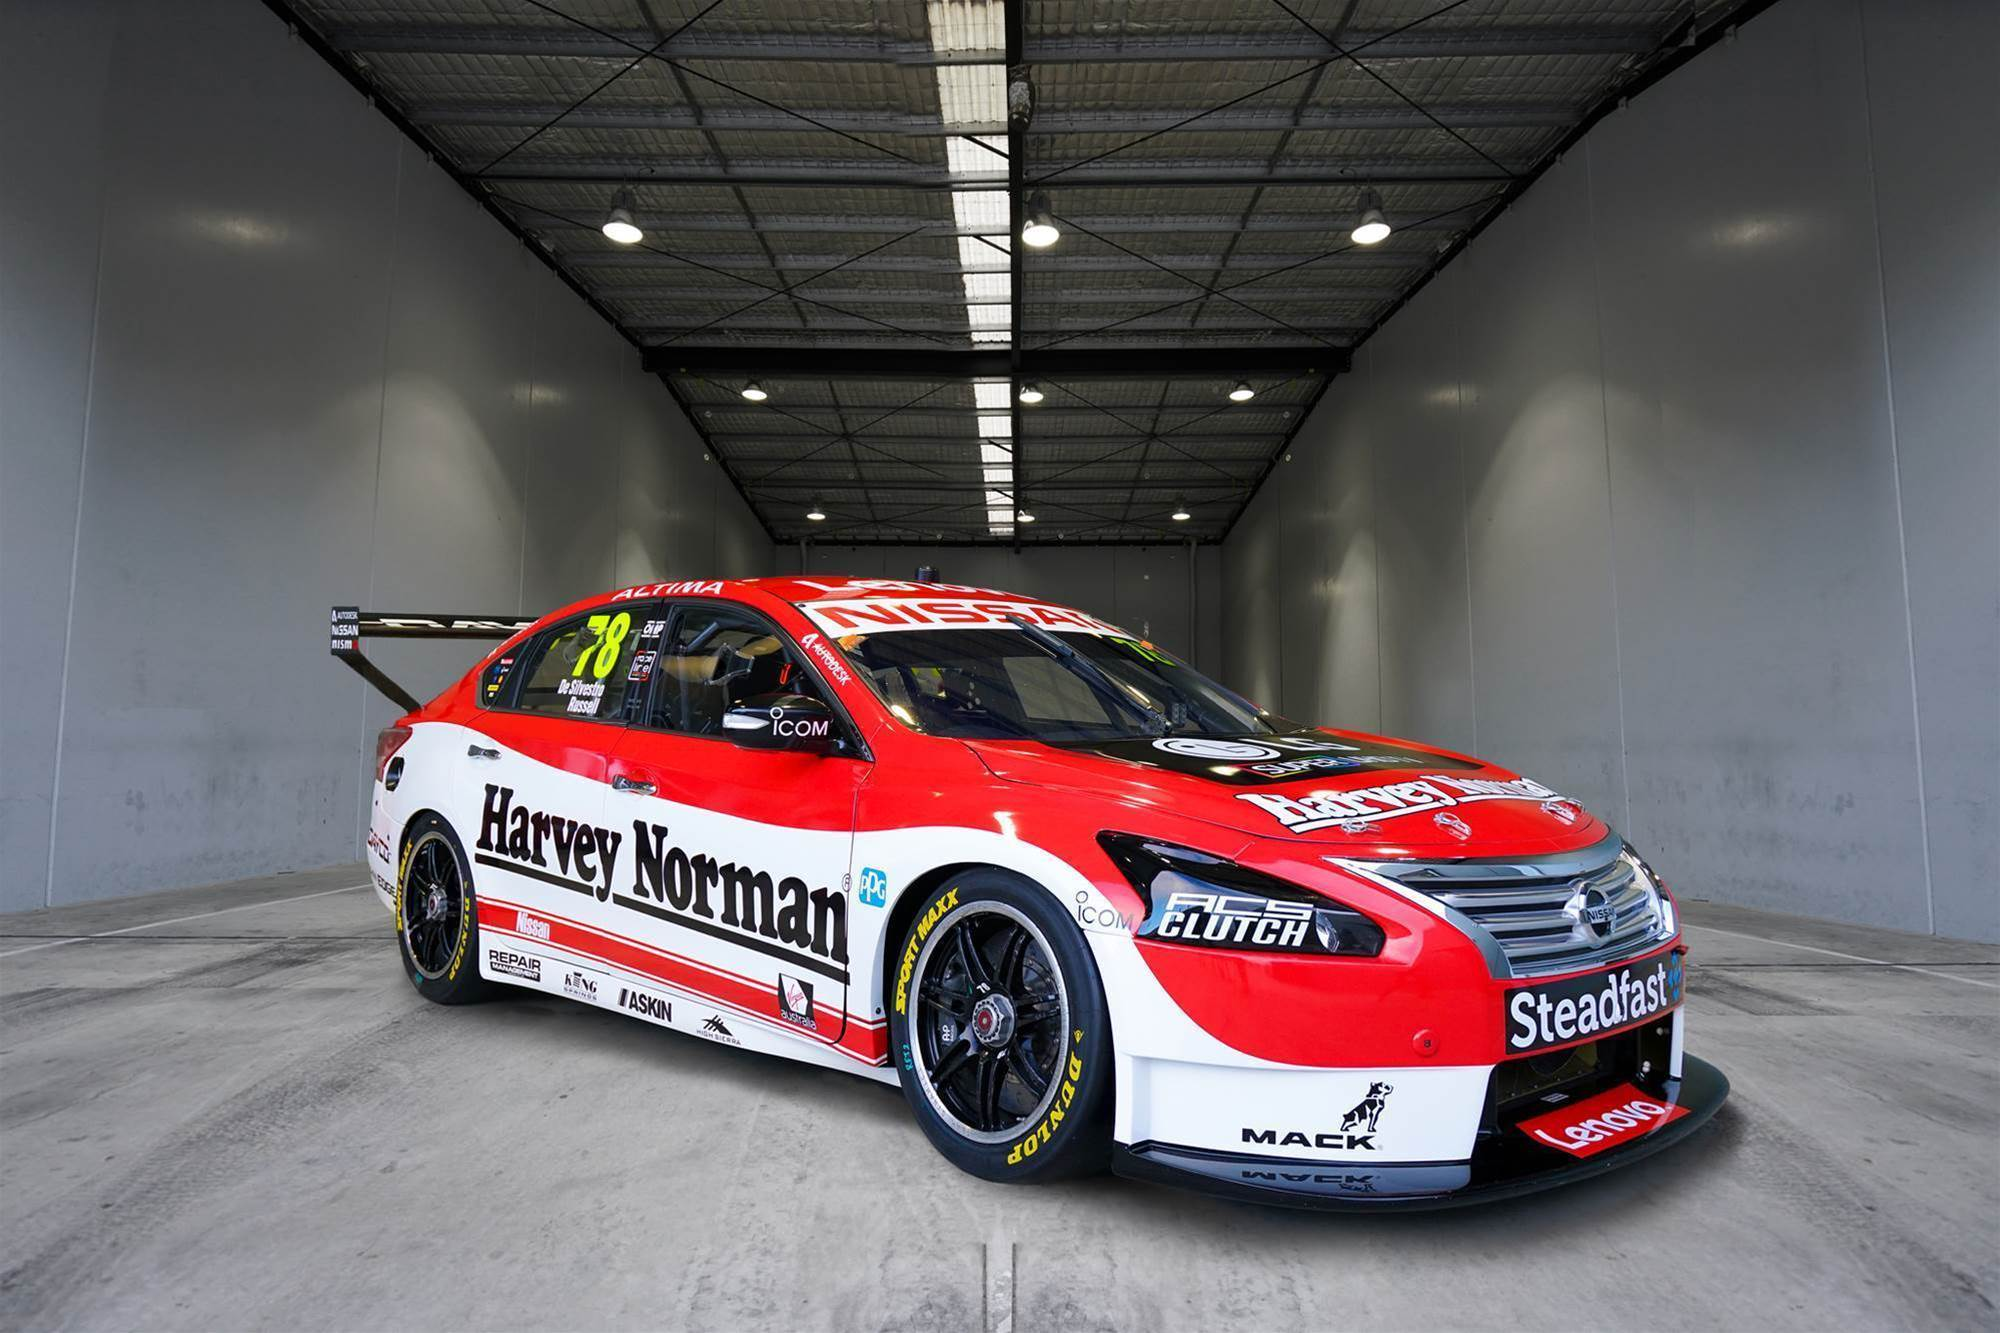 Nissan unveils unique de Silvestro Sandown livery